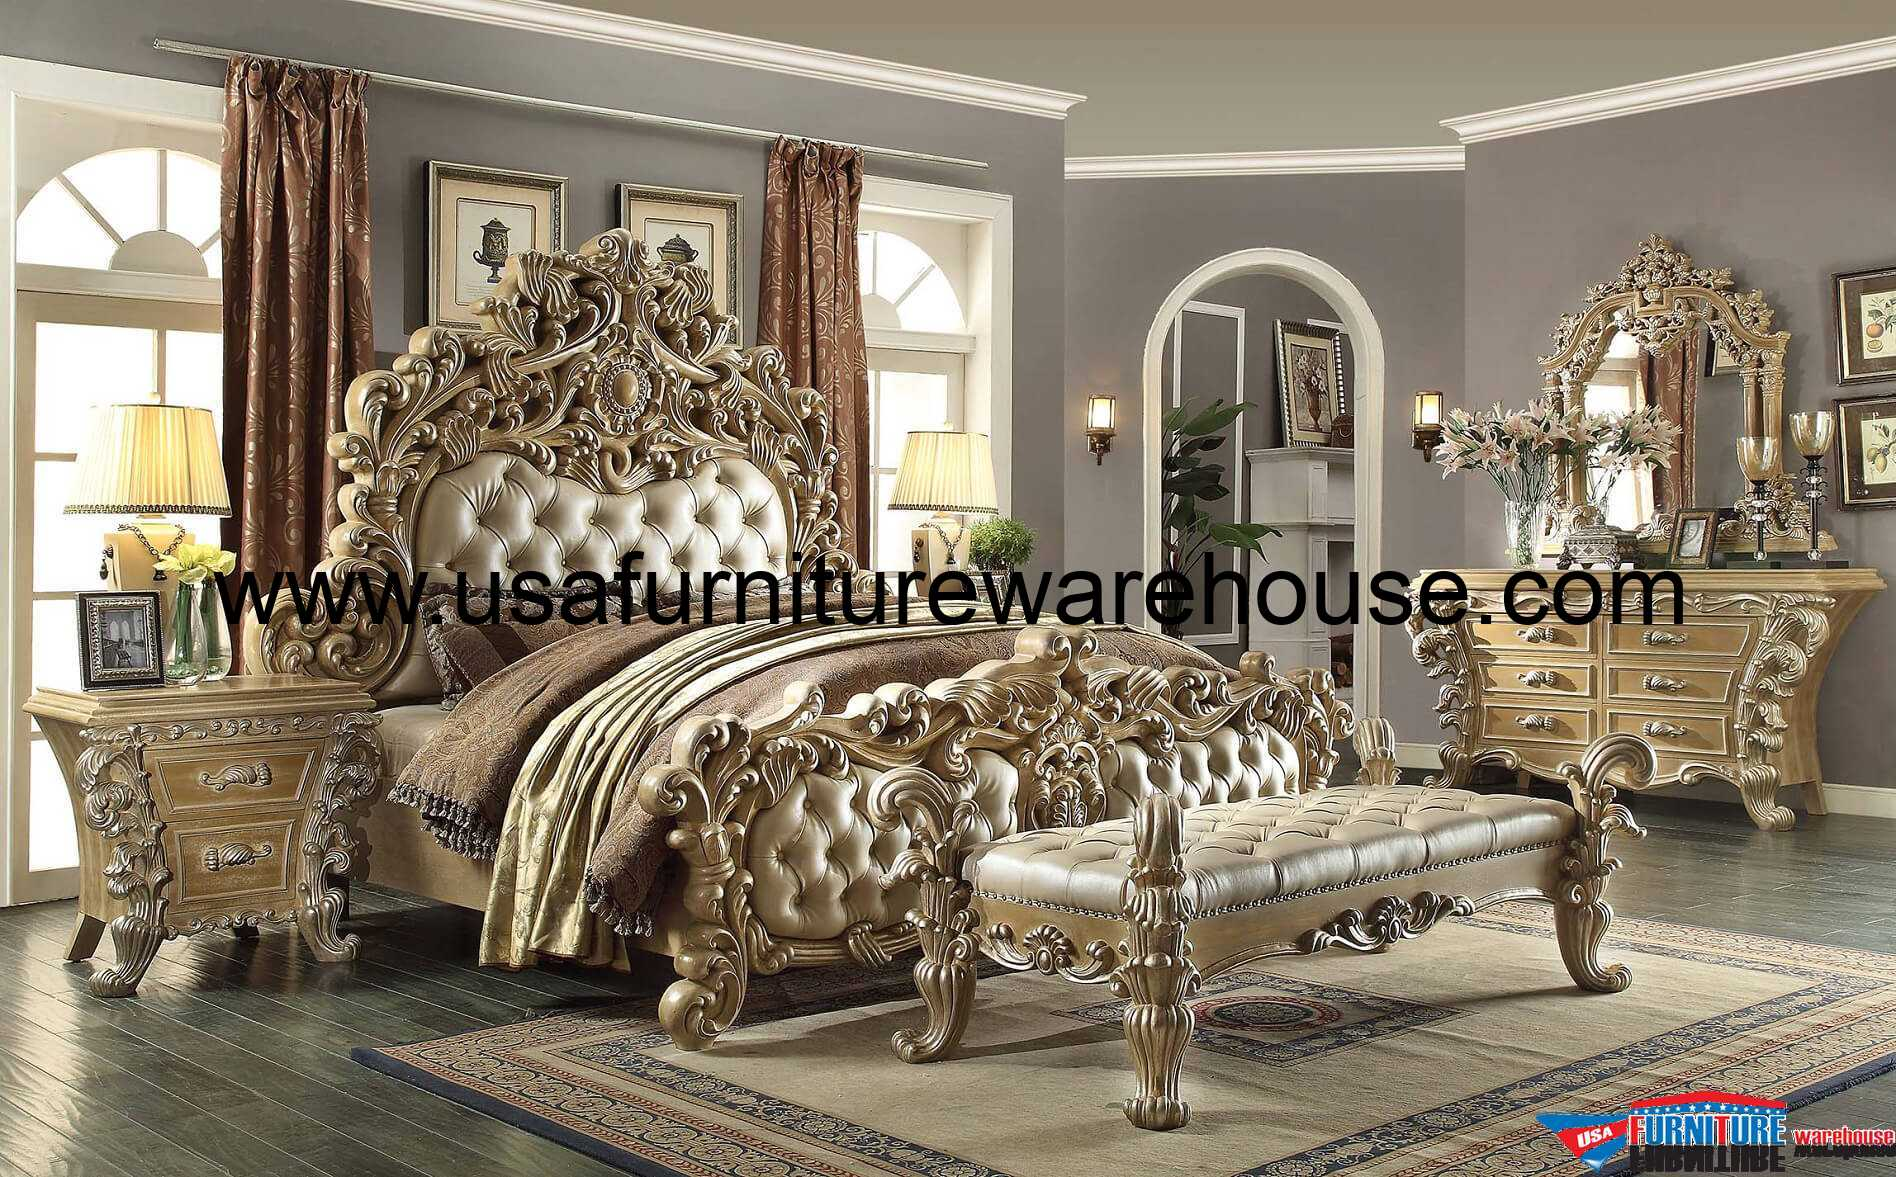 5 Piece Homey Design Royal Kingdom HD 7012 Bedroom Set   USA     Homey Design HD 7012 Bedroom Set